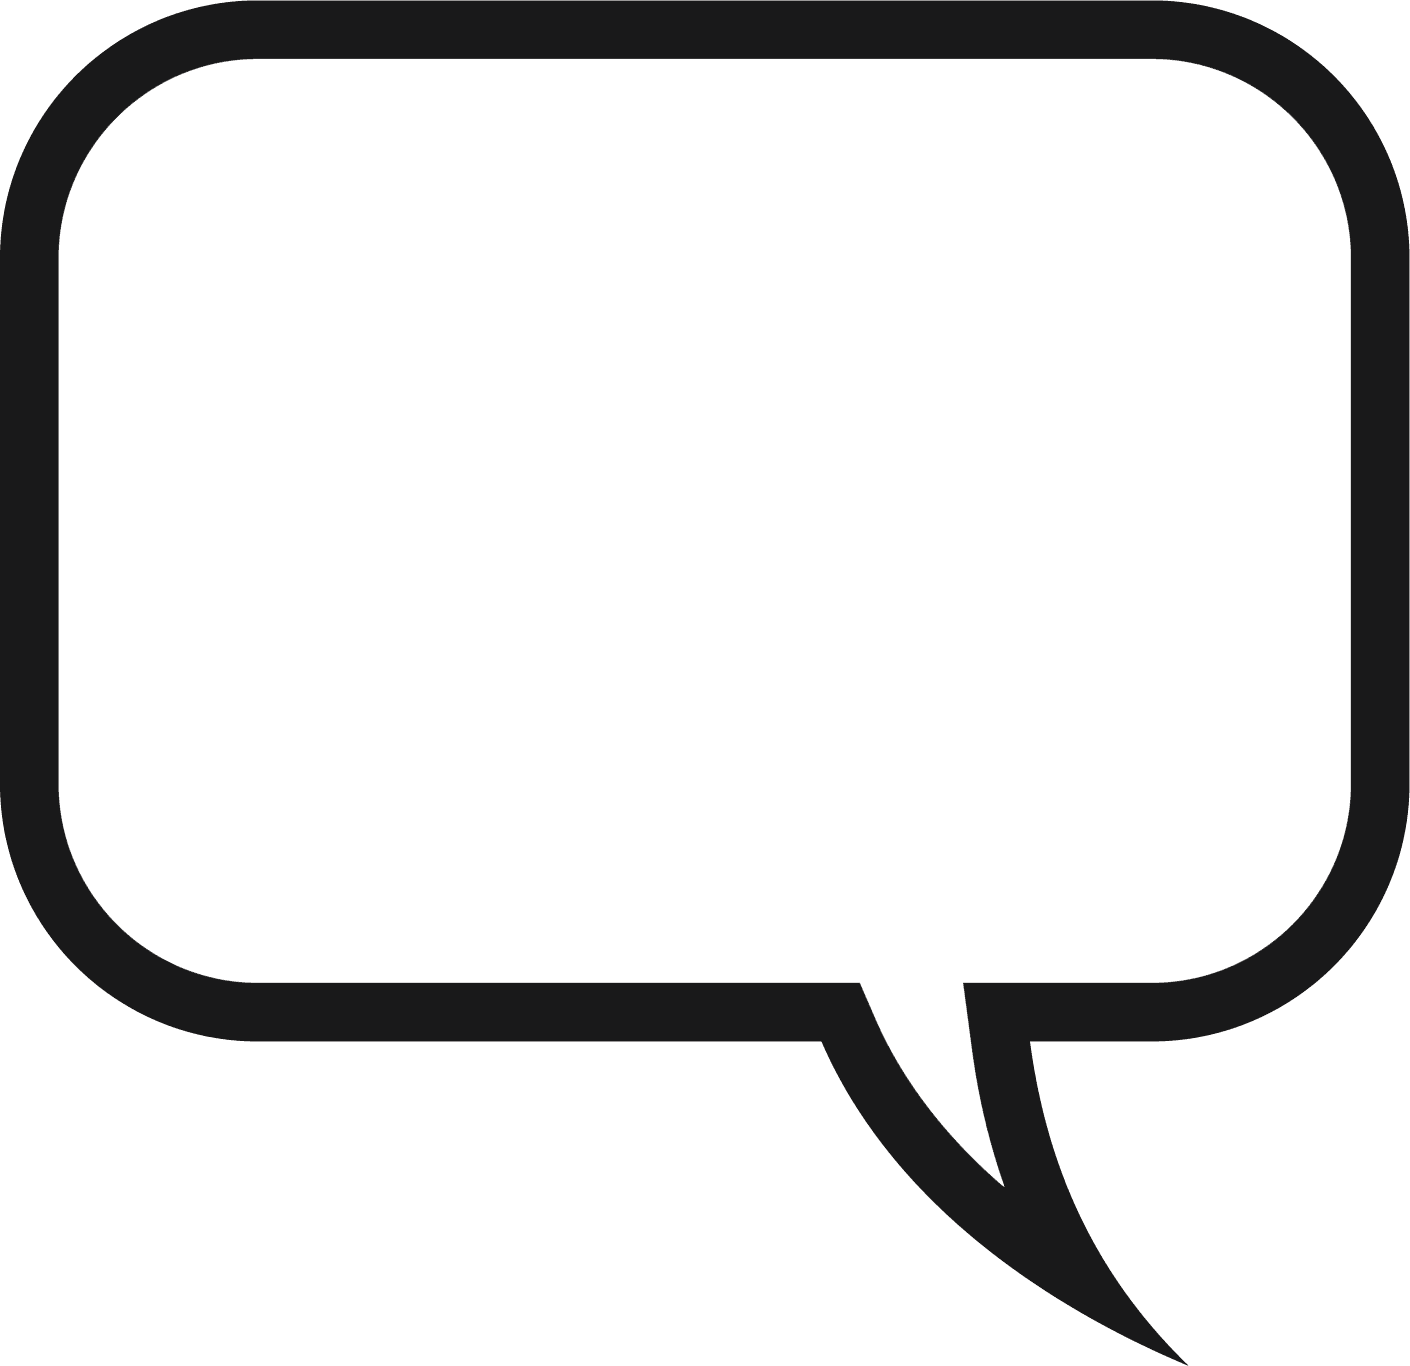 Free Speech Bubble Clipart Black And White, Download Free.